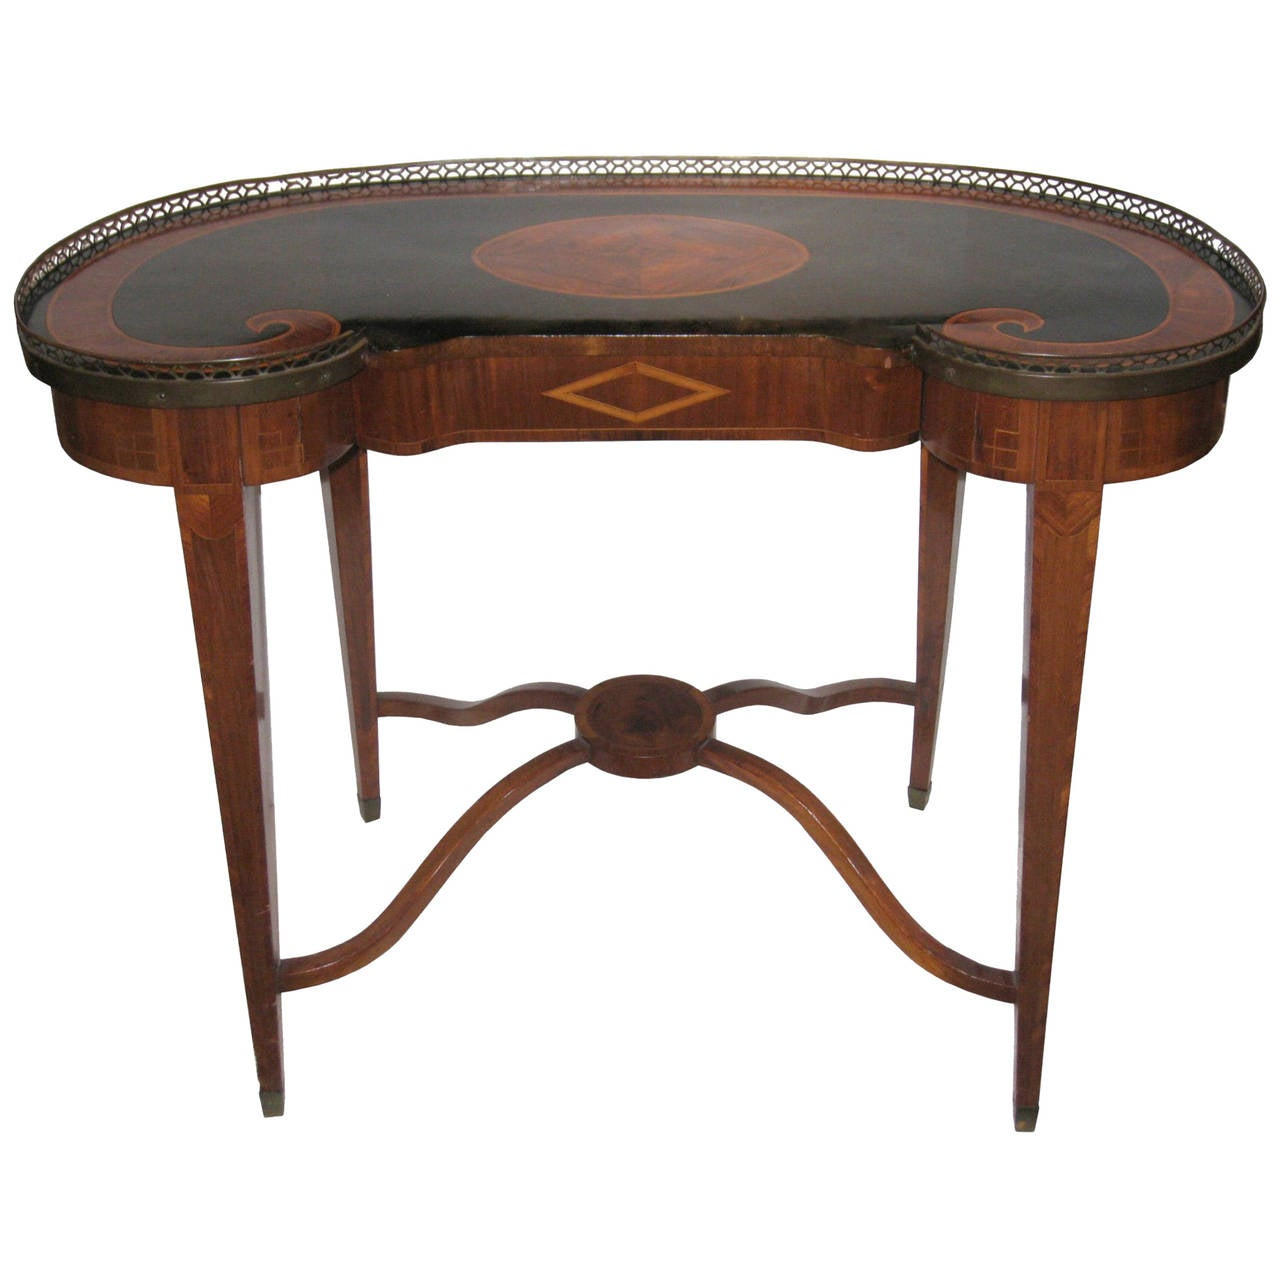 Very Impressive portraiture of Antique Russian Style Inlaid Kidney Shaped Writing Desk at 1stdibs with #663C2C color and 1280x1280 pixels